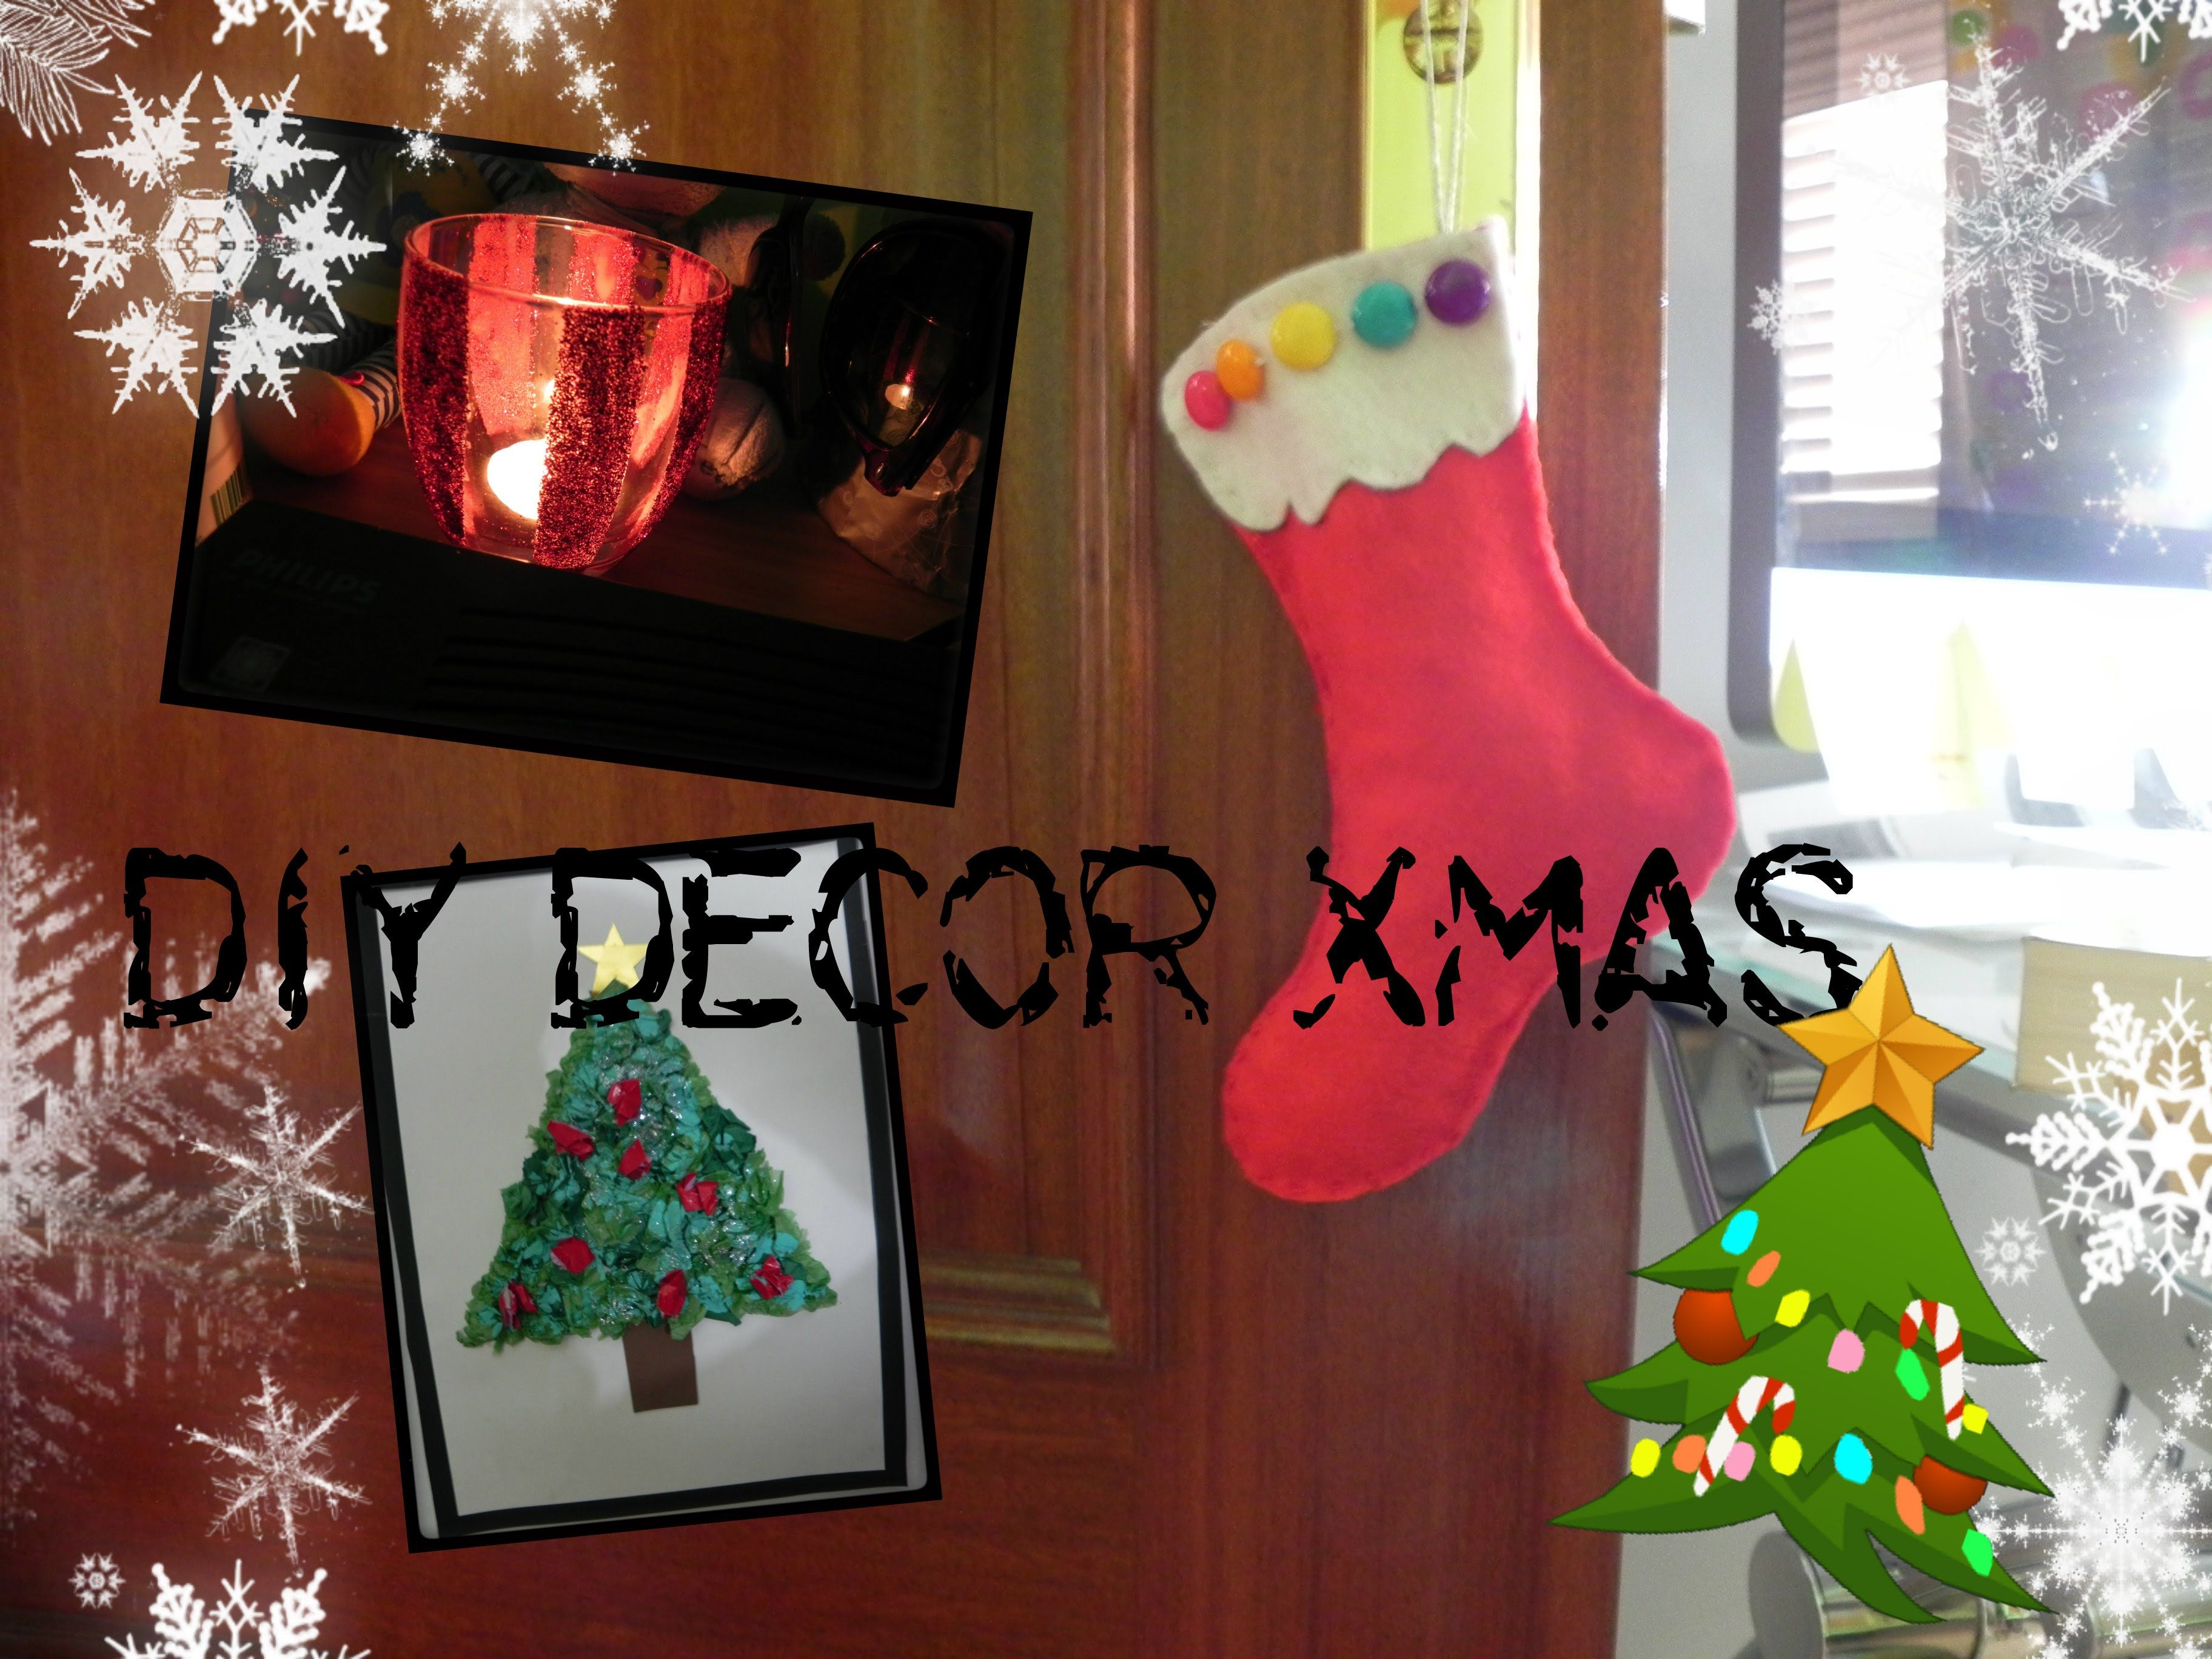 DIY Decor Xmas